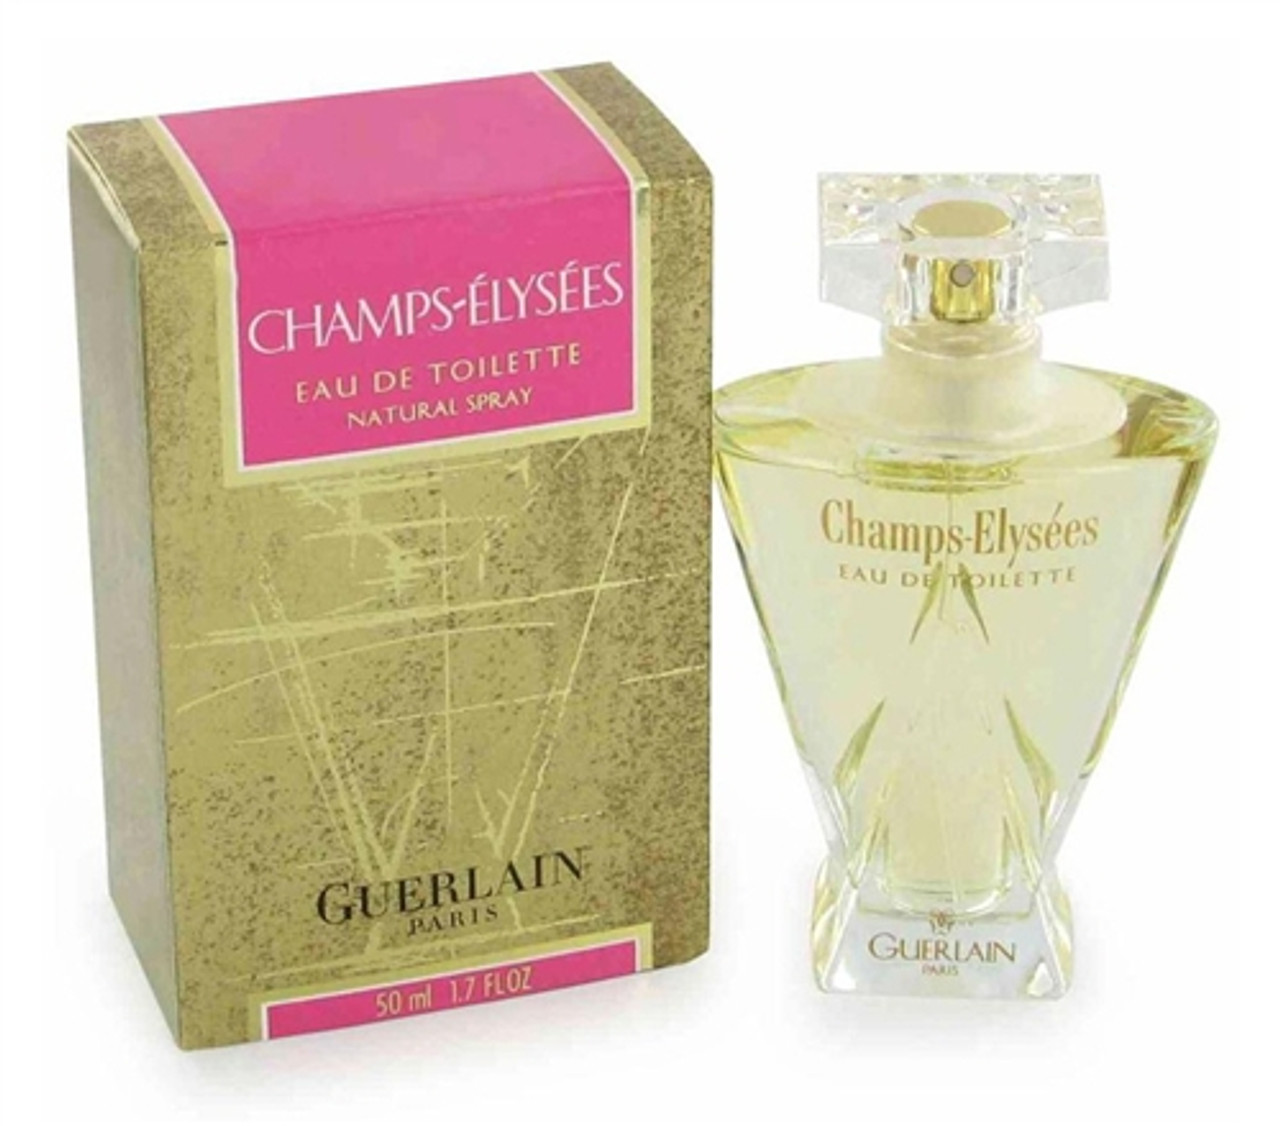 Champs Elysees Eau de Toilette by Guerlain - 1.7 OZ